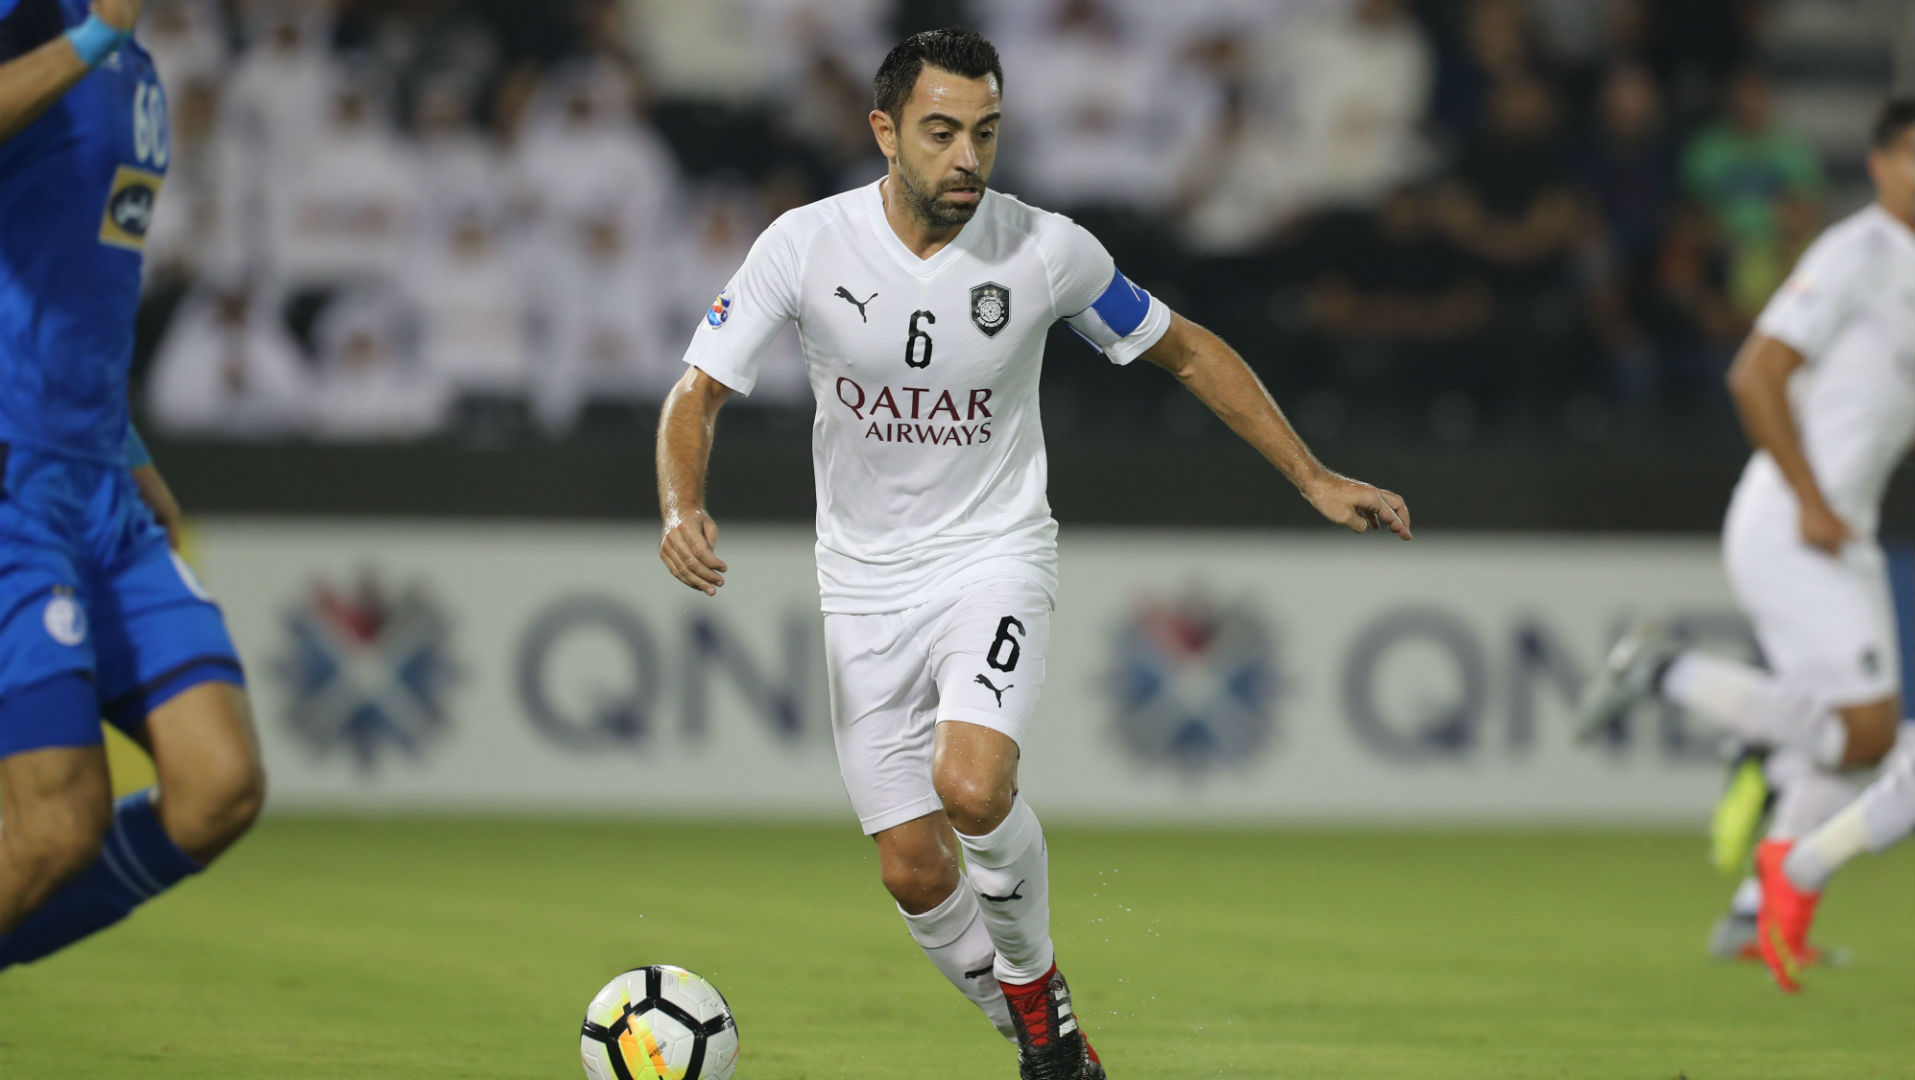 Xavi insists a 48-team World Cup in Qatar 'will not be good'